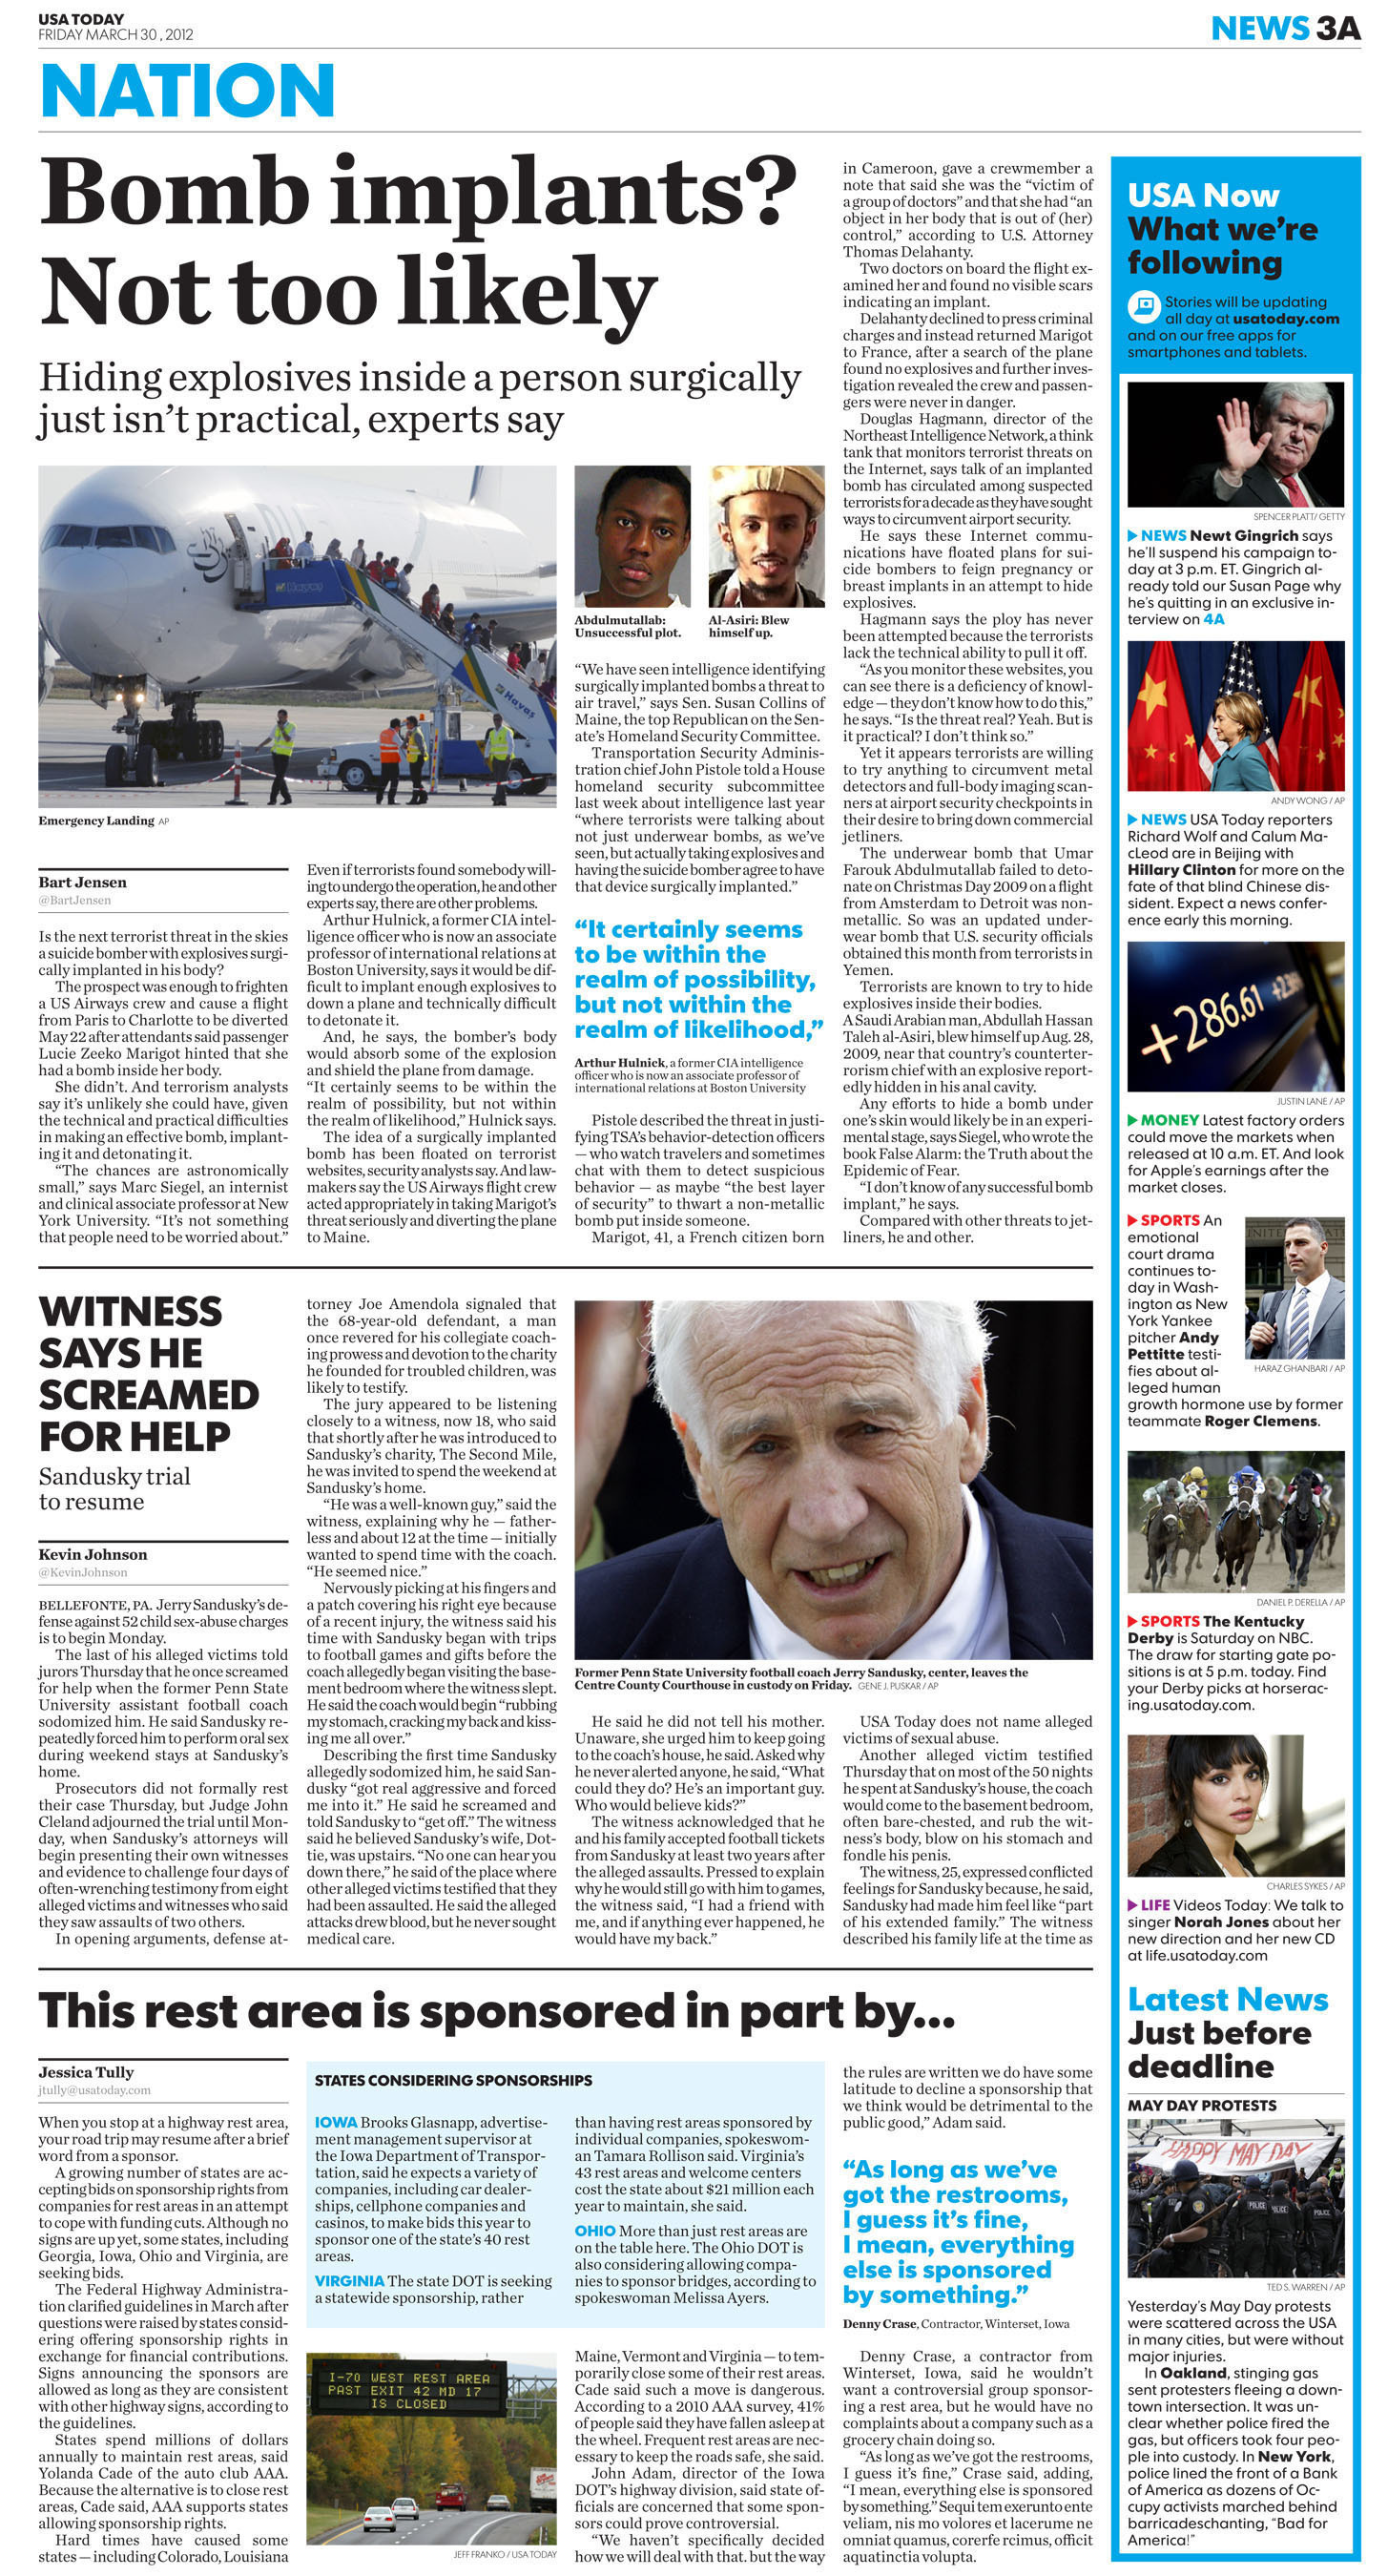 USA TODAY Unveils Dramatic Redesign on all platforms -- Page 3A(PRNewsFoto/USA TODAY)